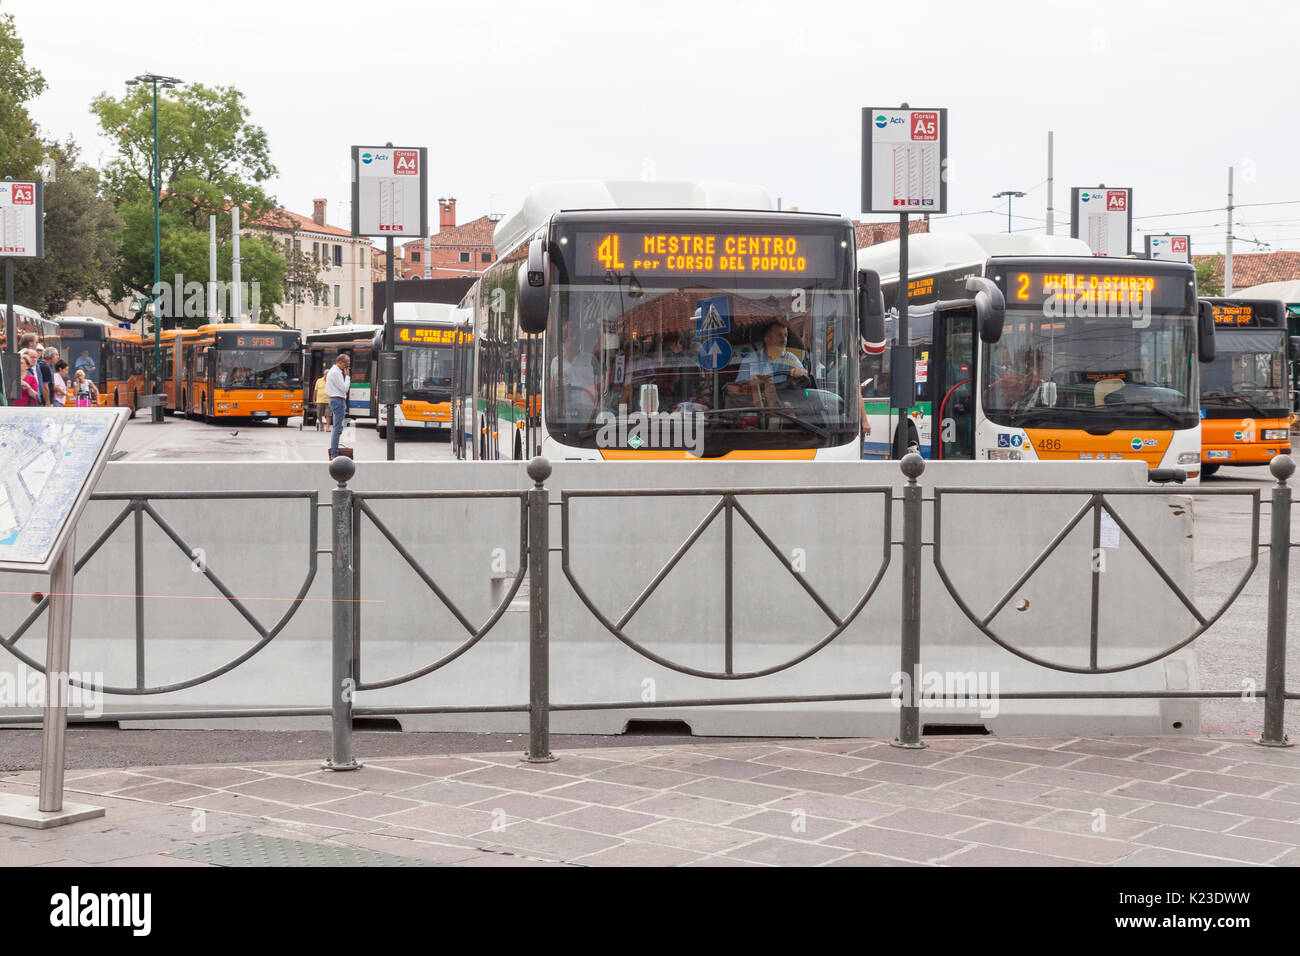 Venice, Veneto, Italy, 28th August 2017. Anti-terror concrete barriers and police presence in Piazzale Roma ahead of the start of the Venice Film Festival. This is the first day after completion of the installation of the barriers to check the viabilty of traffic  flow and pedestrians. Bus drivers sit waiting to depart in their buses behind the barrier. An armoured car was in place on Ponte della Liberta. The barriers are designed to block any vehicular attack. Credit Mary Clarke/Alamy Live news - Stock Image